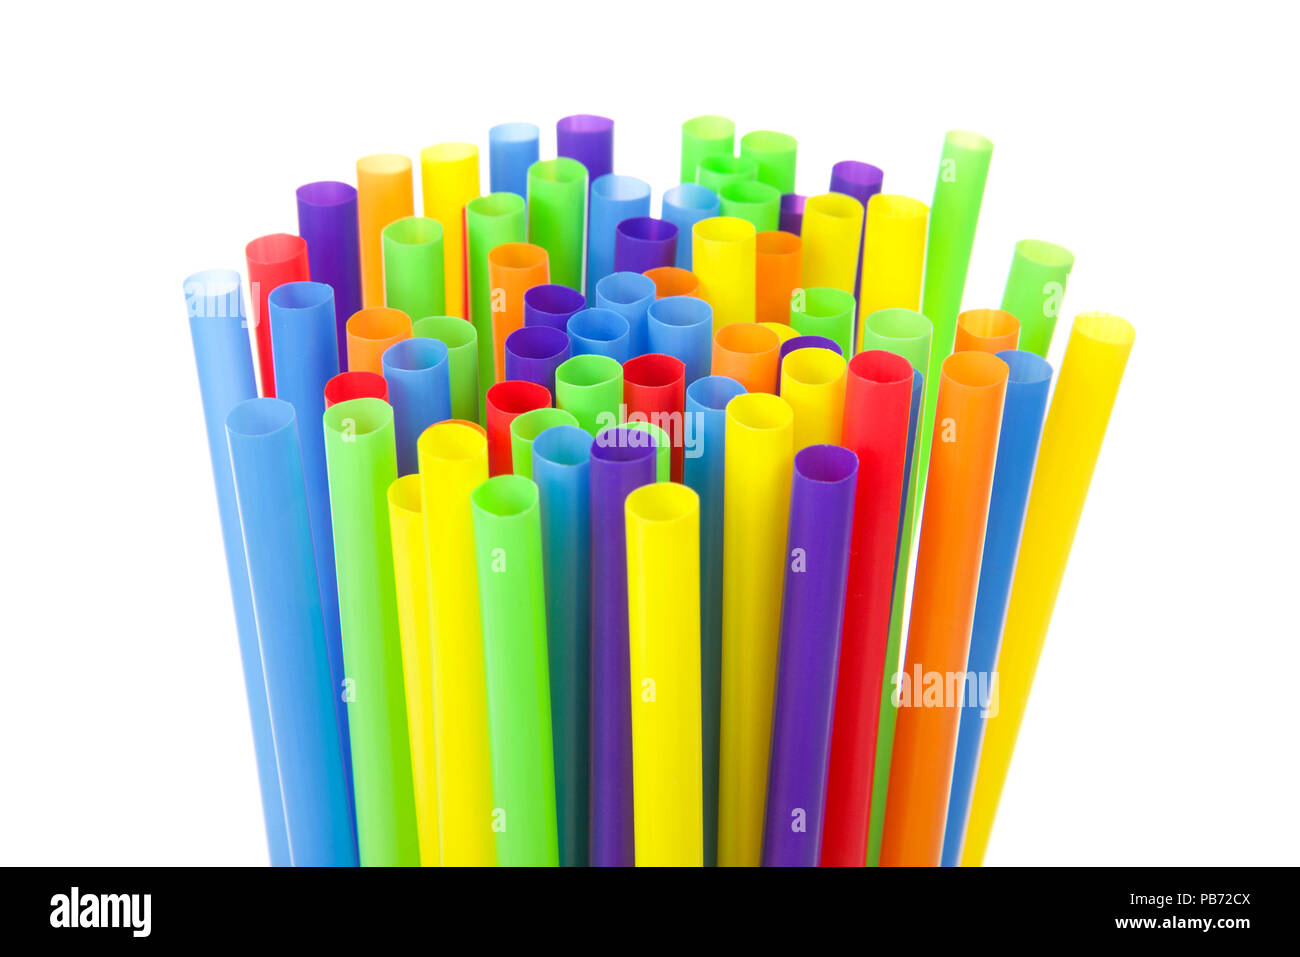 many colorful plastic straws with opening upwards isolated on white background. San Francisco's board of supervisors voted unanimously to join cities  - Stock Image